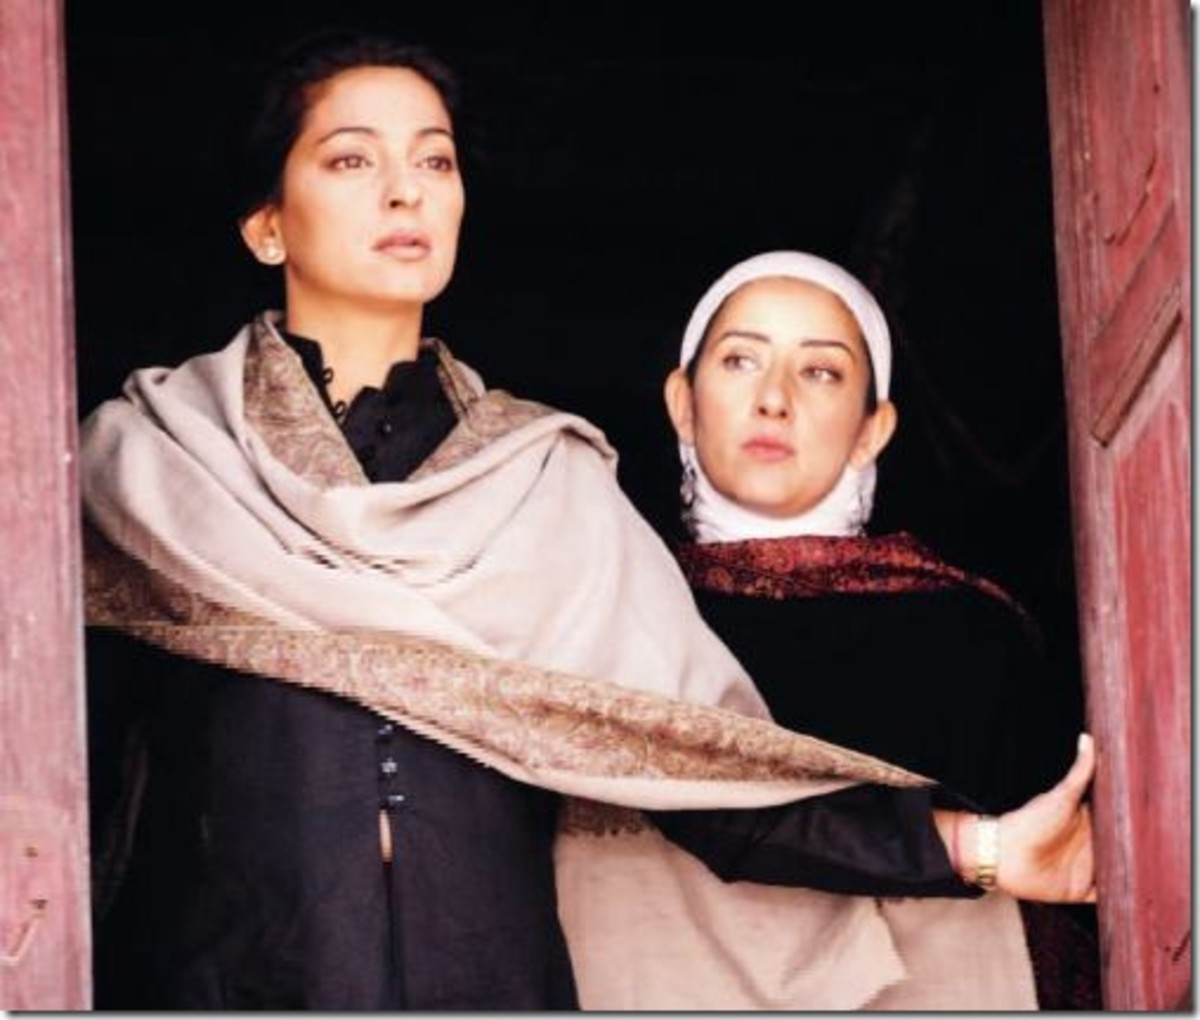 Juhi Chawla and Manisha Koirala in I am Megha